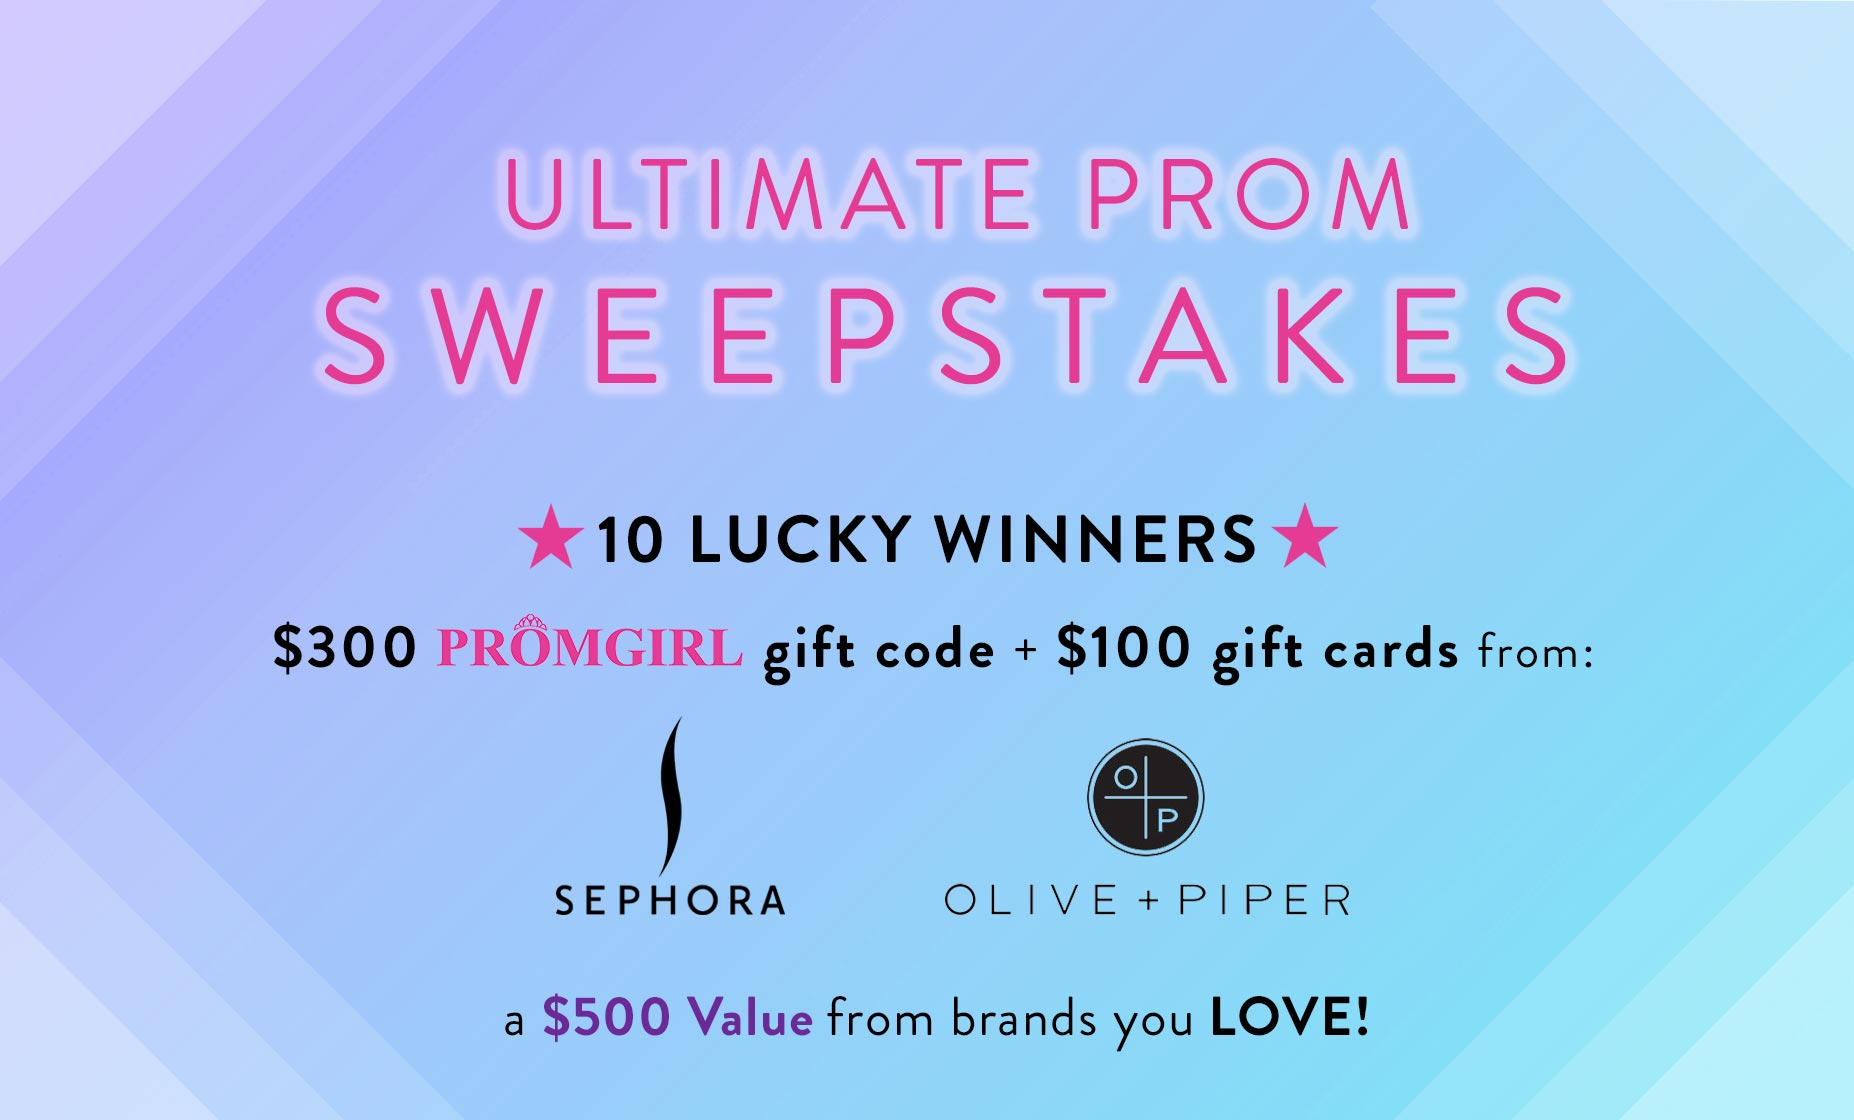 Ultimate Prom Sweepstakes